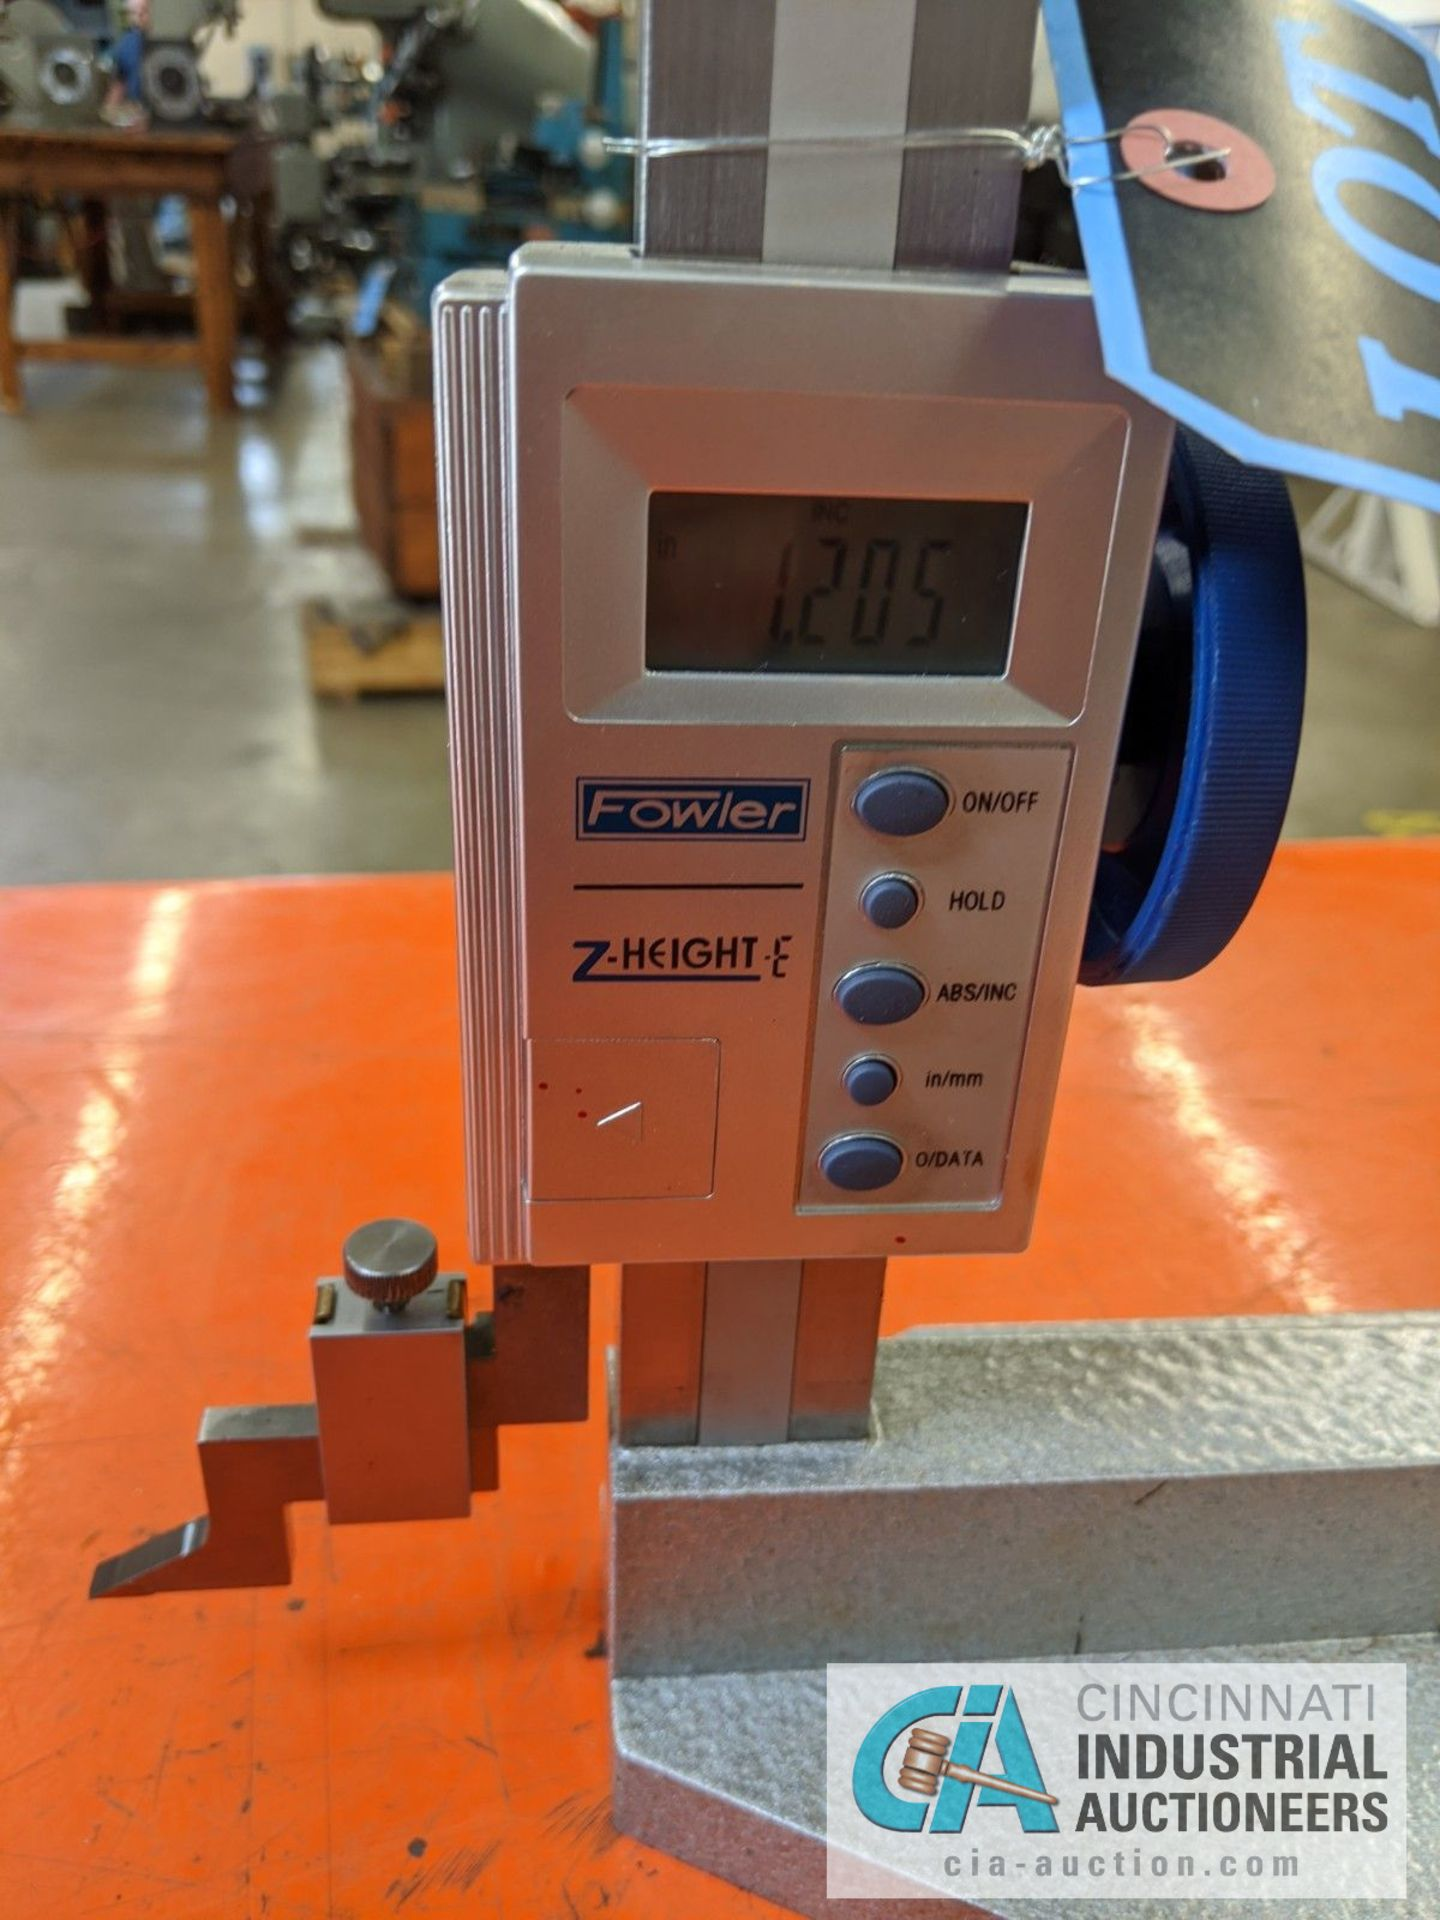 """18"""" FOWLER """"2-HEIGHT"""" DIGITAL HEIGHT GAGE - Image 2 of 4"""